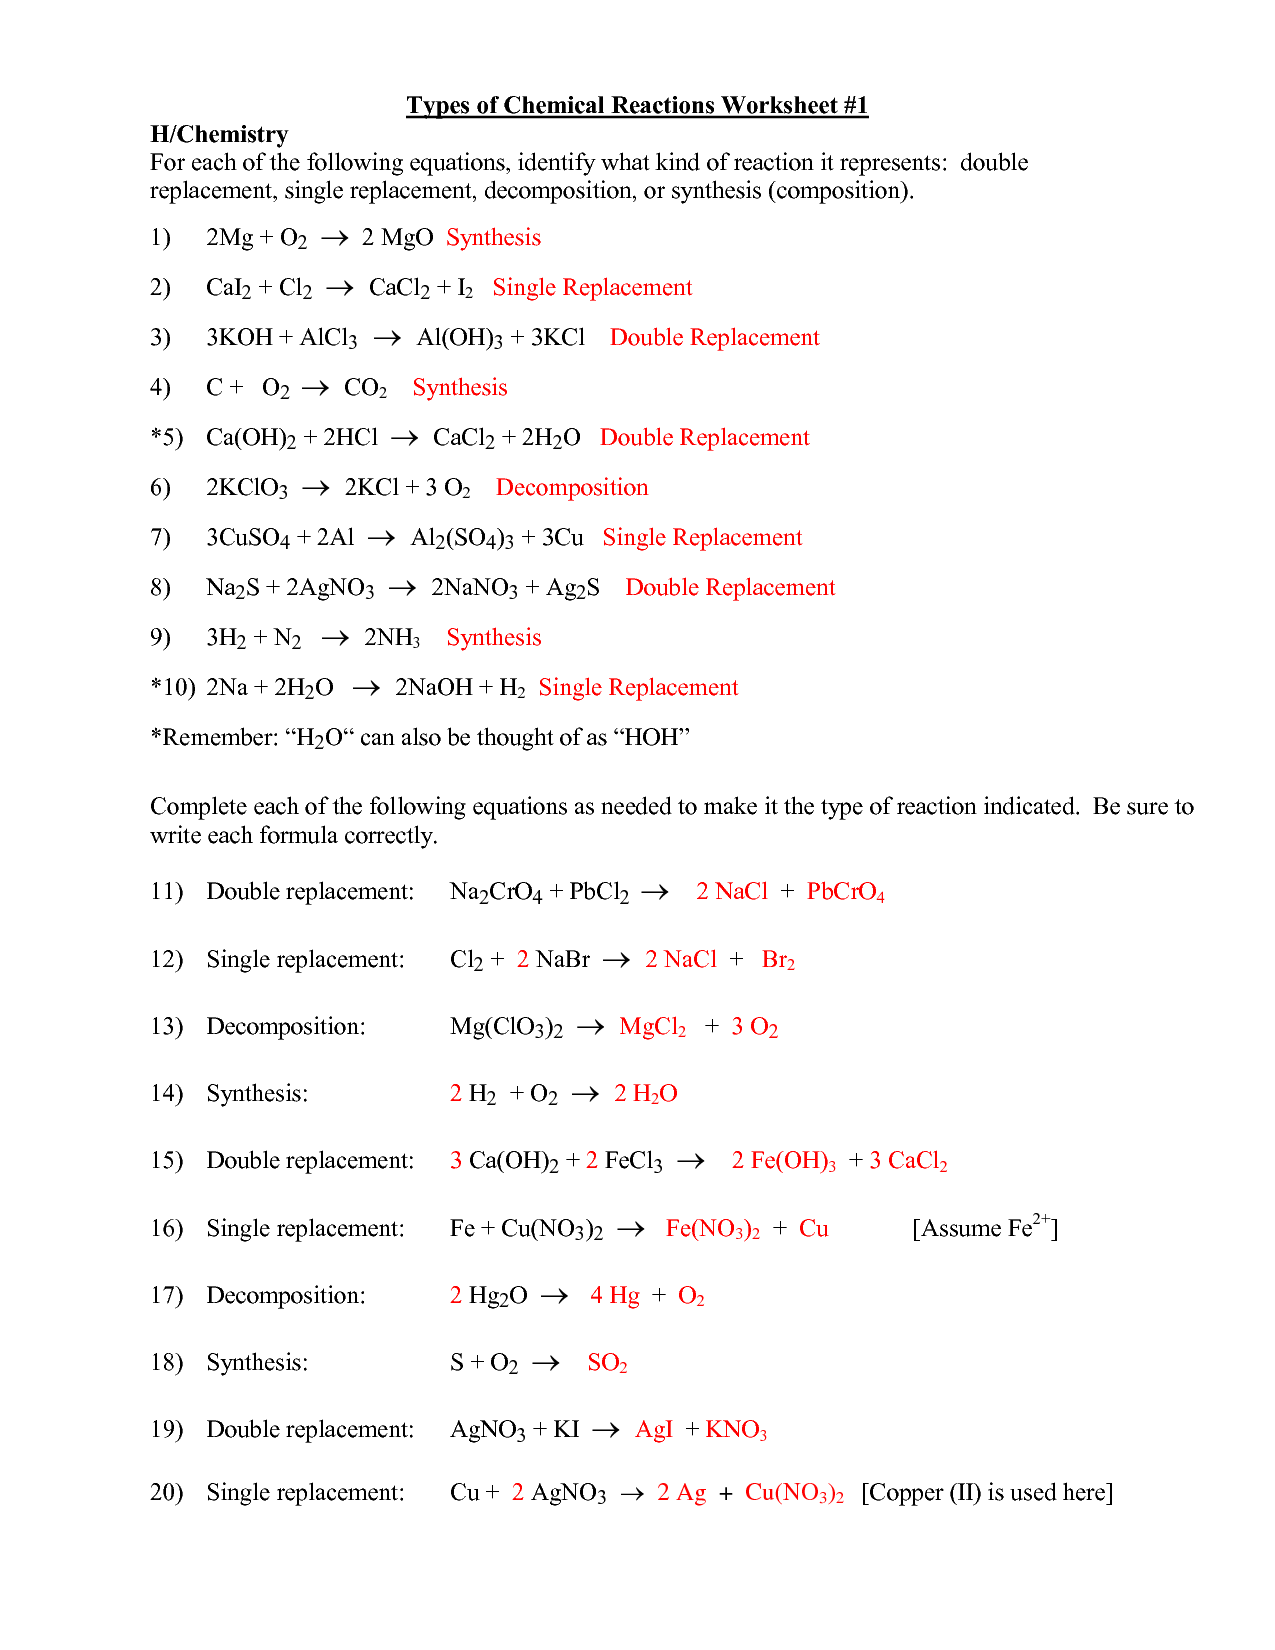 Printables Types Of Chemical Reactions Worksheet Answers